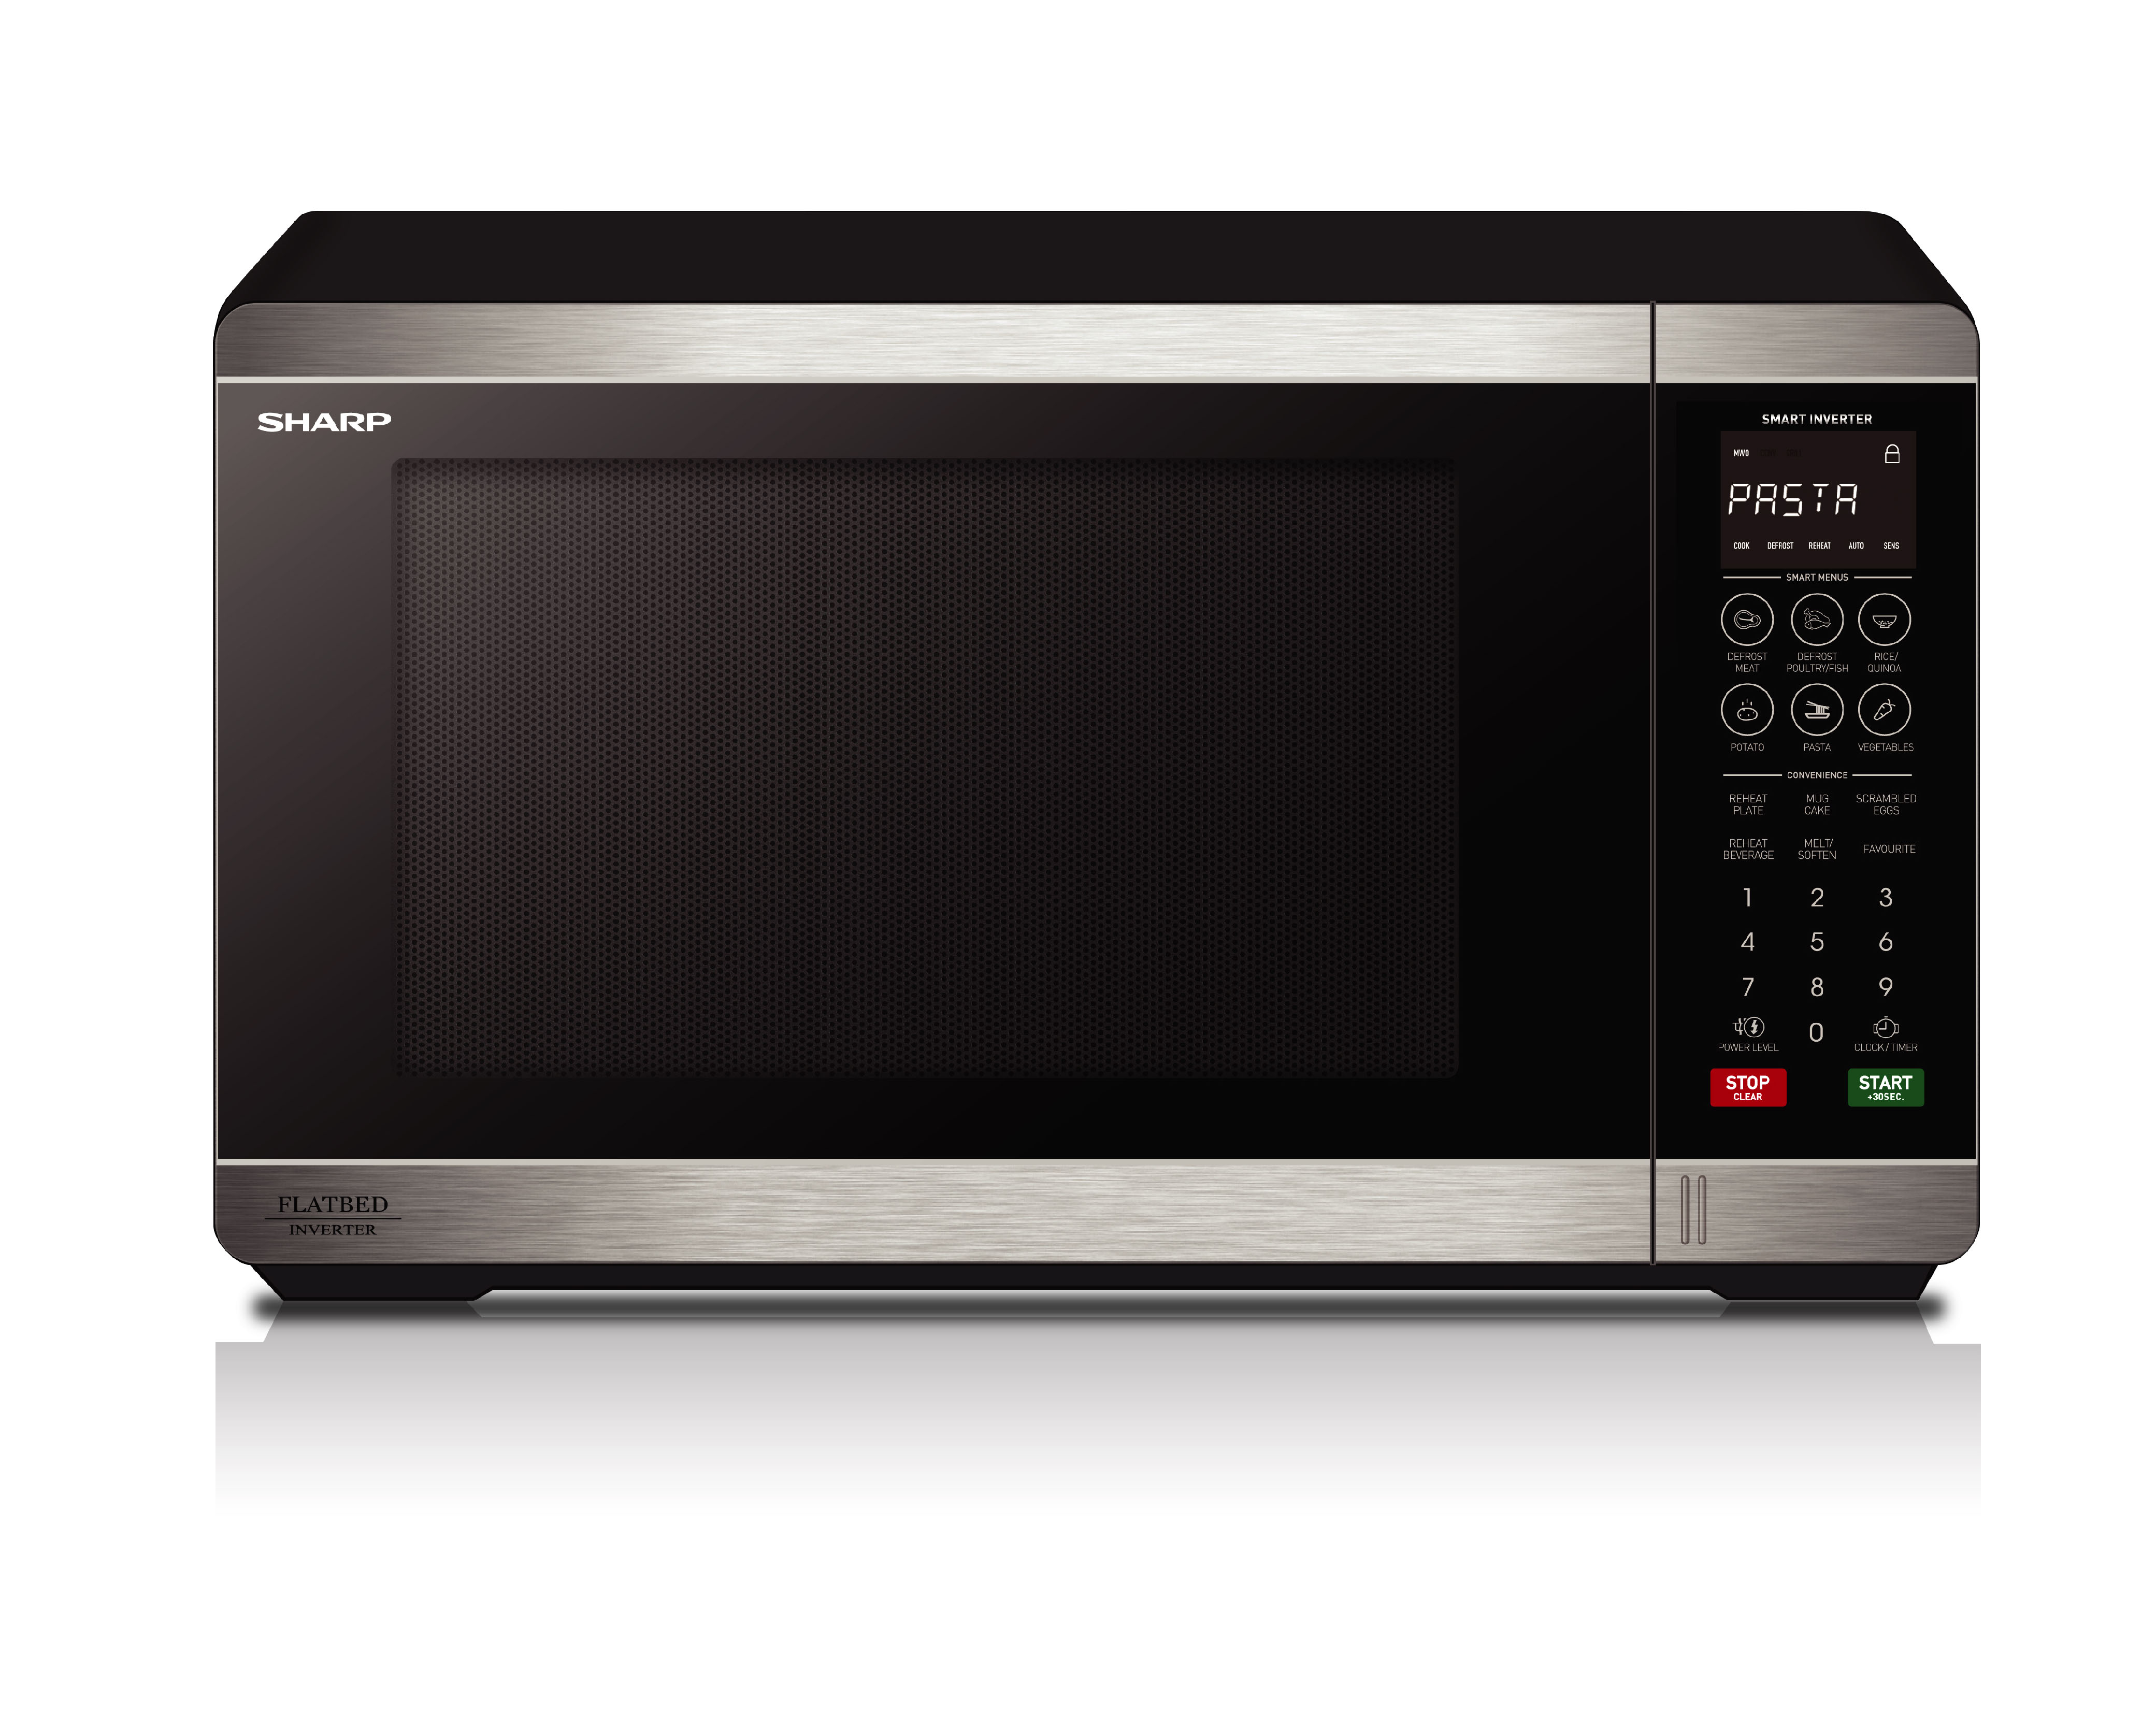 Flatbed Microwave 1200W - Stainless Steel